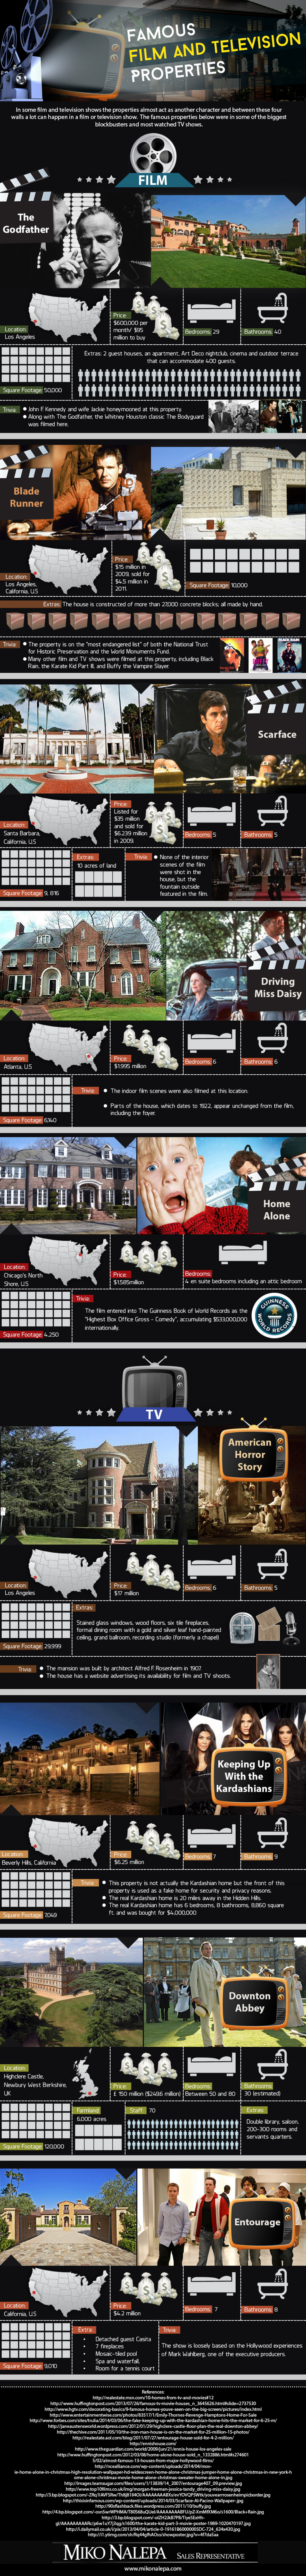 Famous Film And Television Properties Infographic